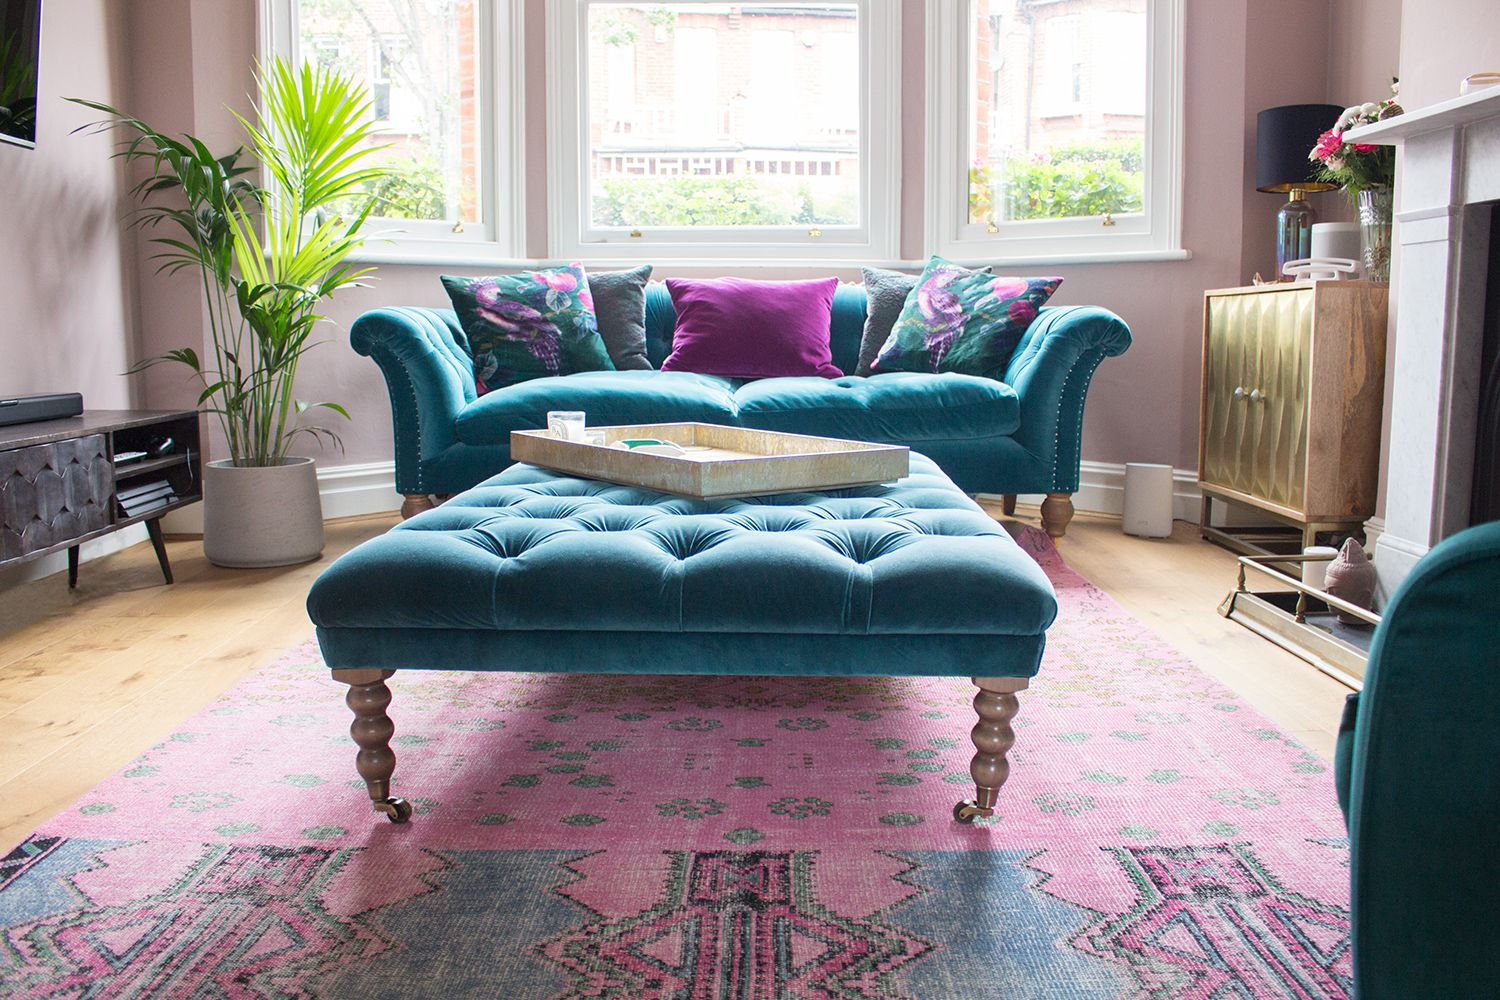 A photo of the teal velvet sofa, with the teal footstool in front, on a pink rug.